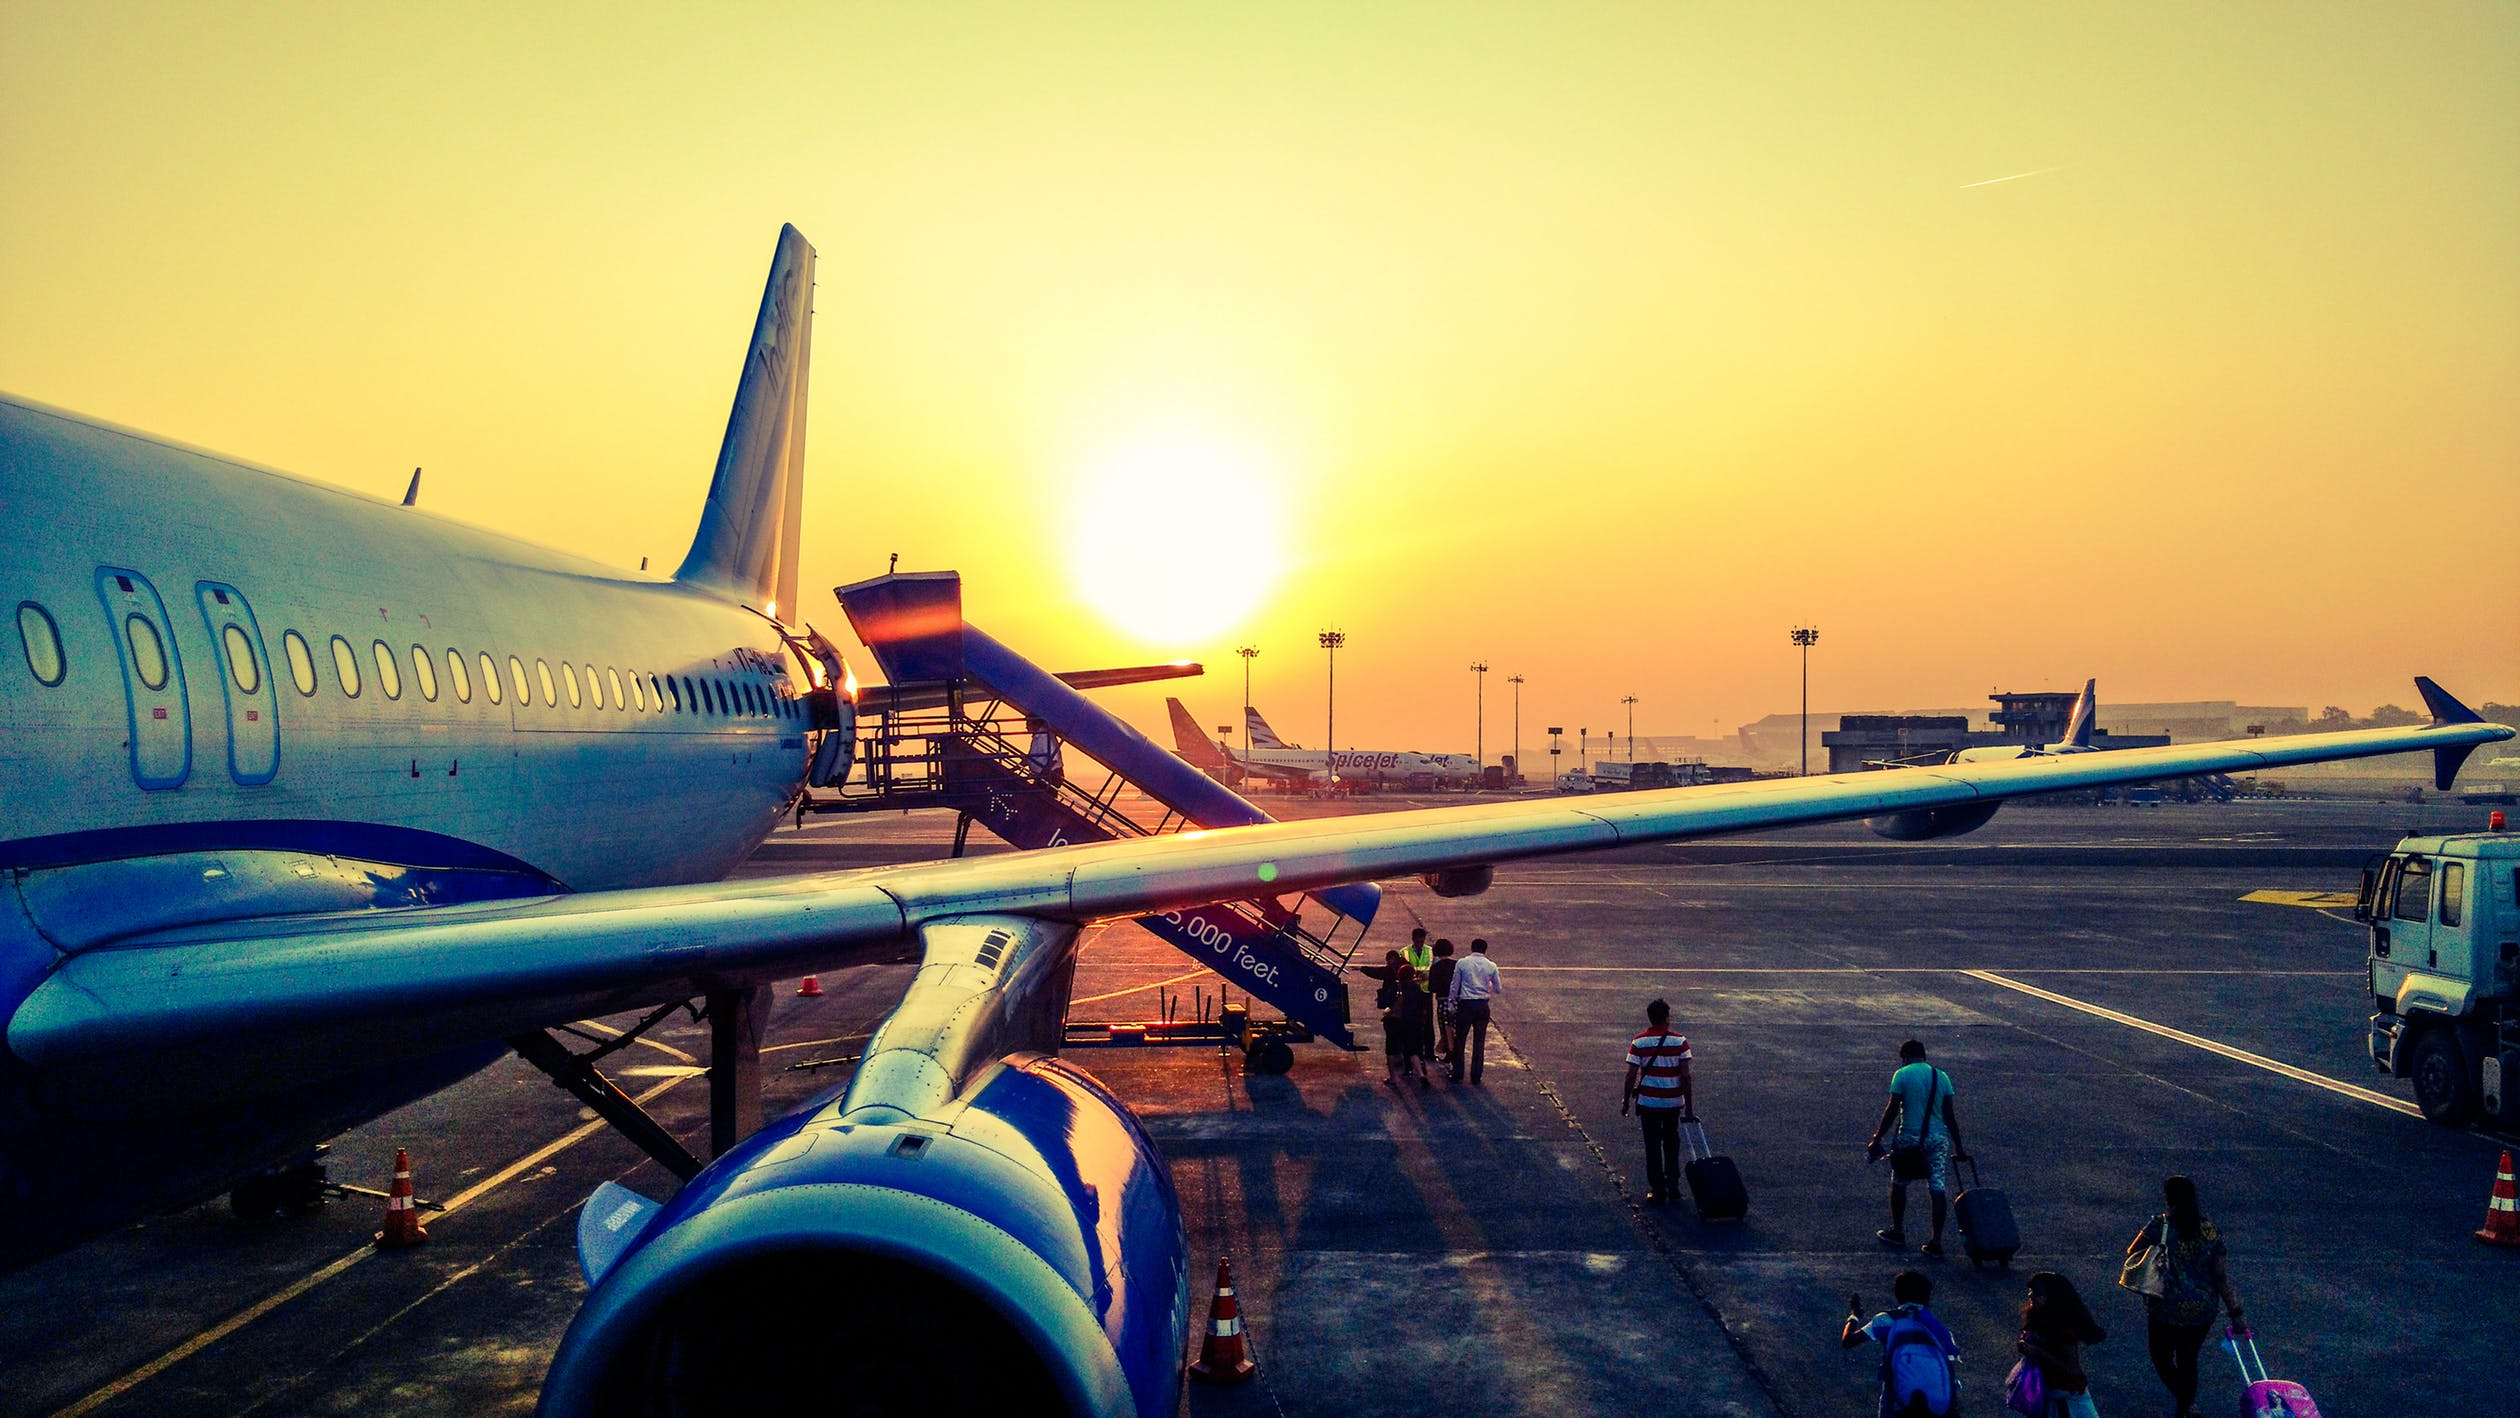 Plan ahead for travel in 2020! Flying with REAL ID